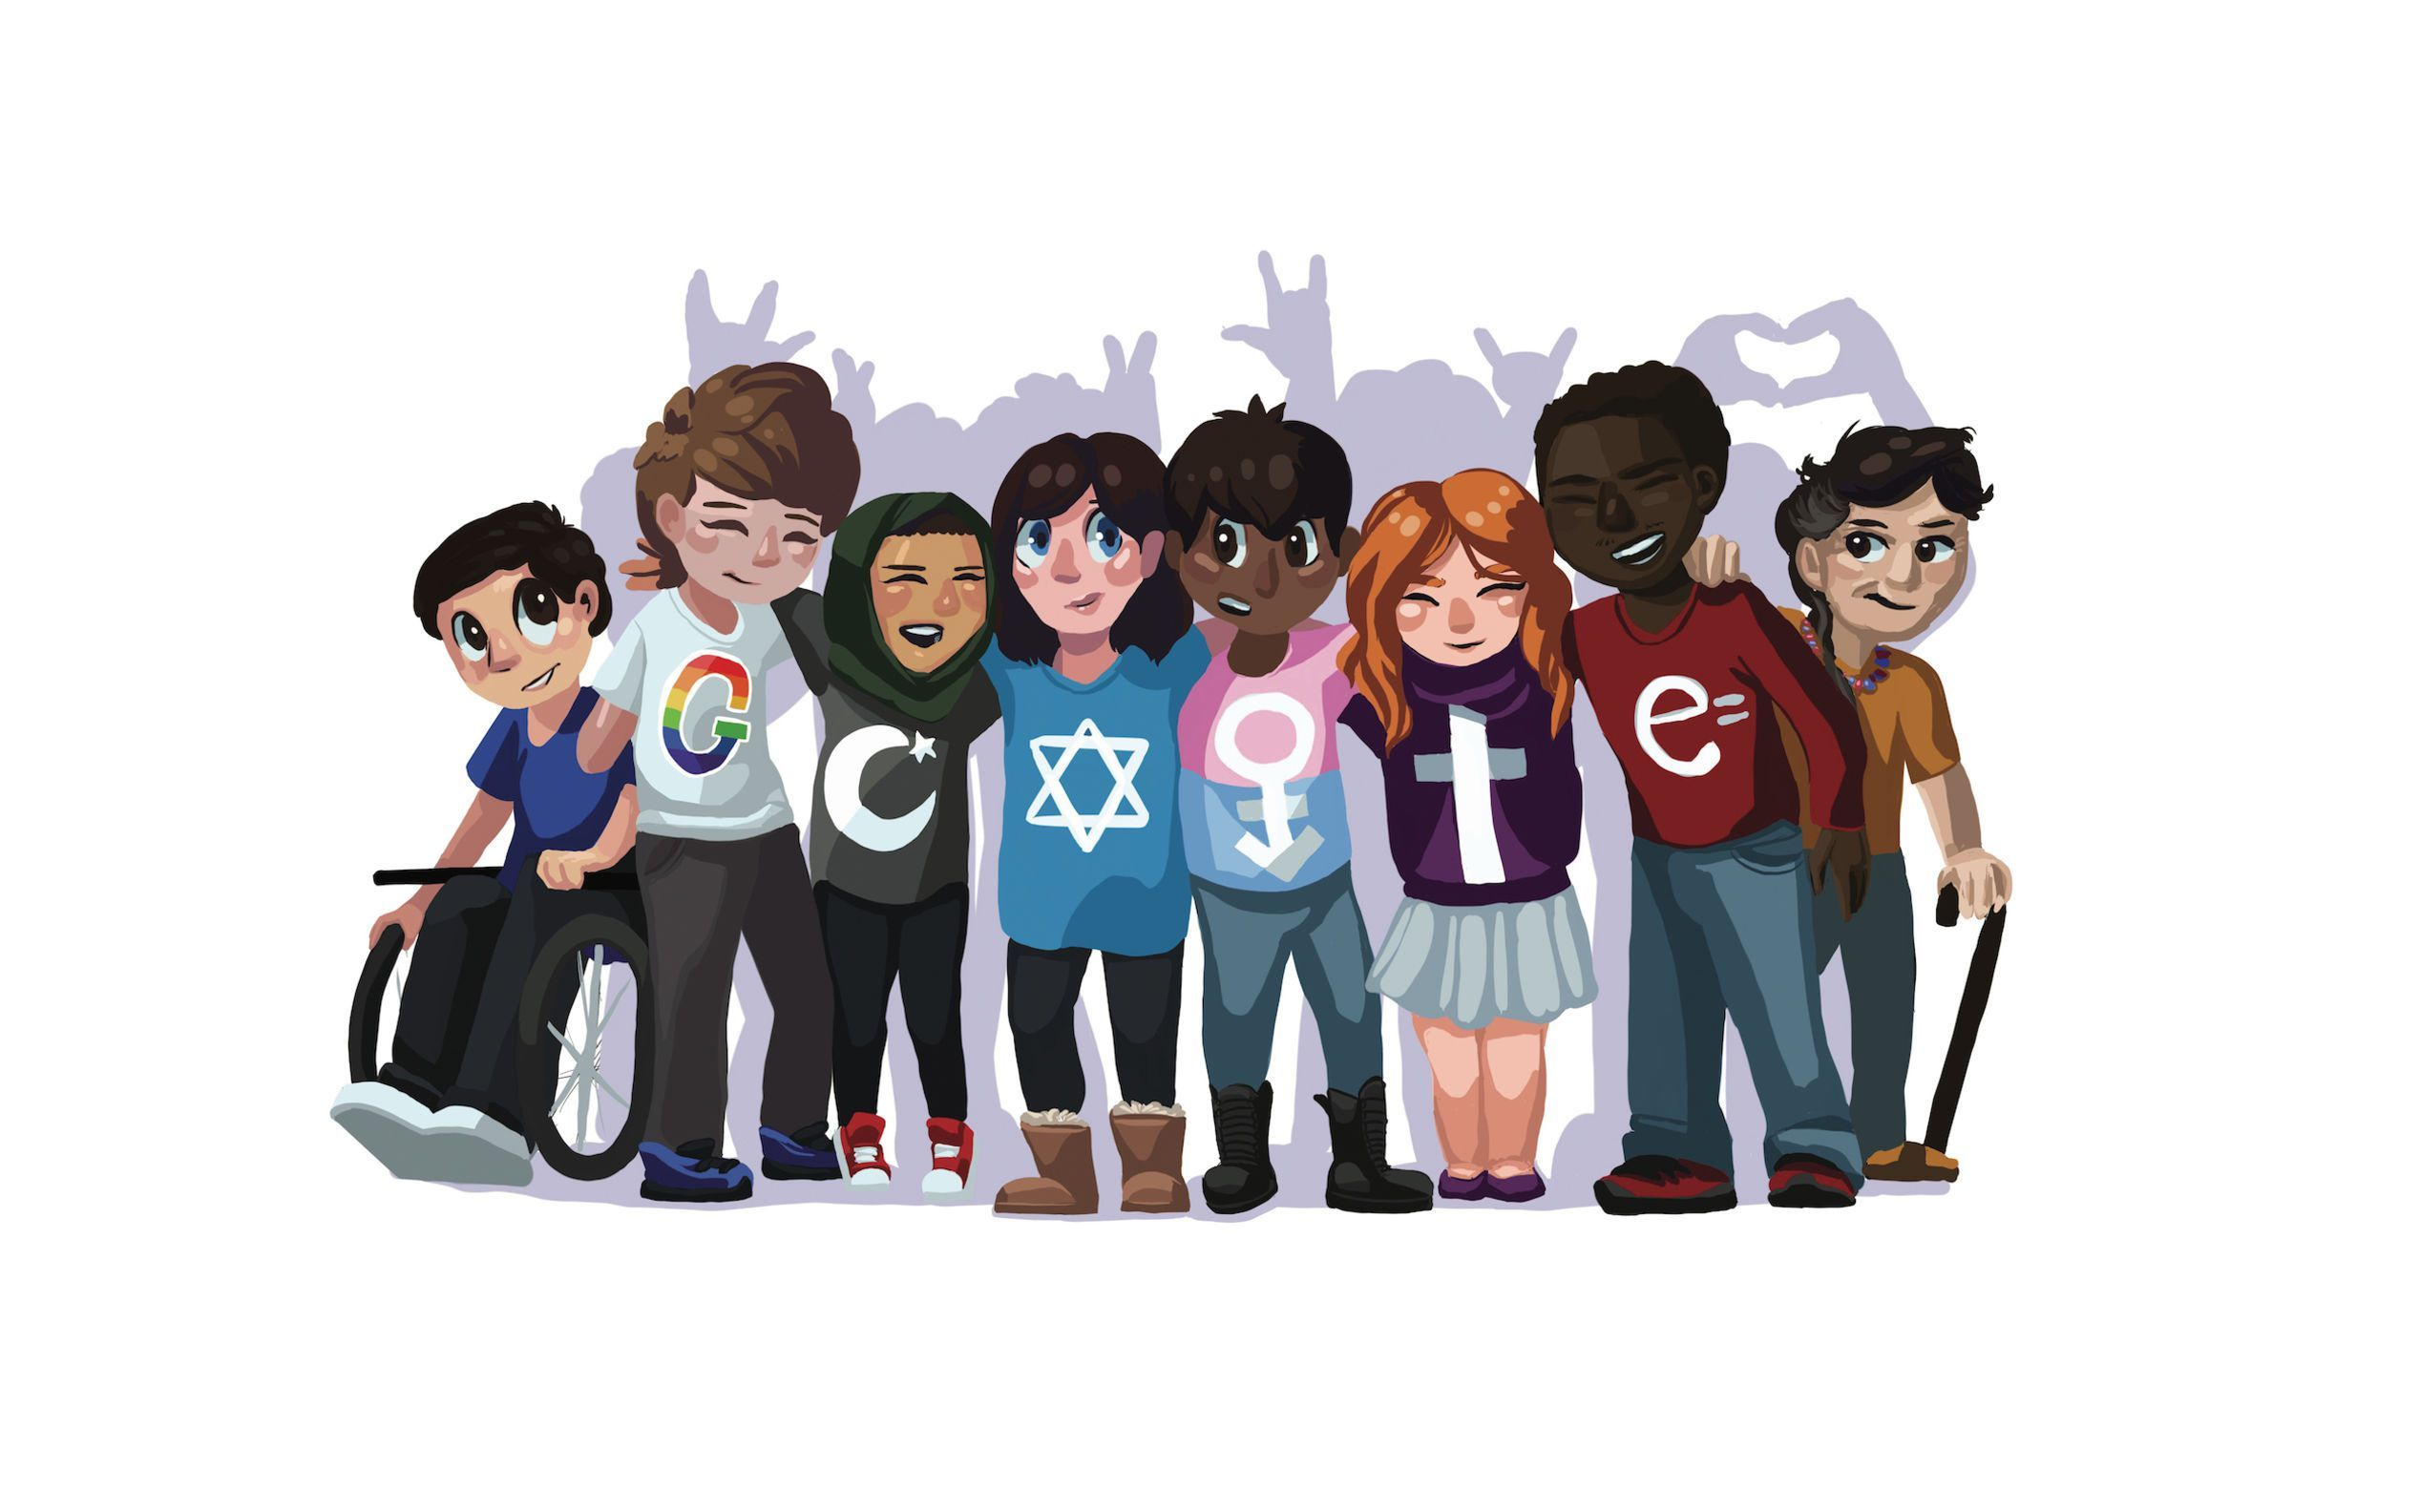 This 15YearOld's Google Doodle Pictures a Peaceful